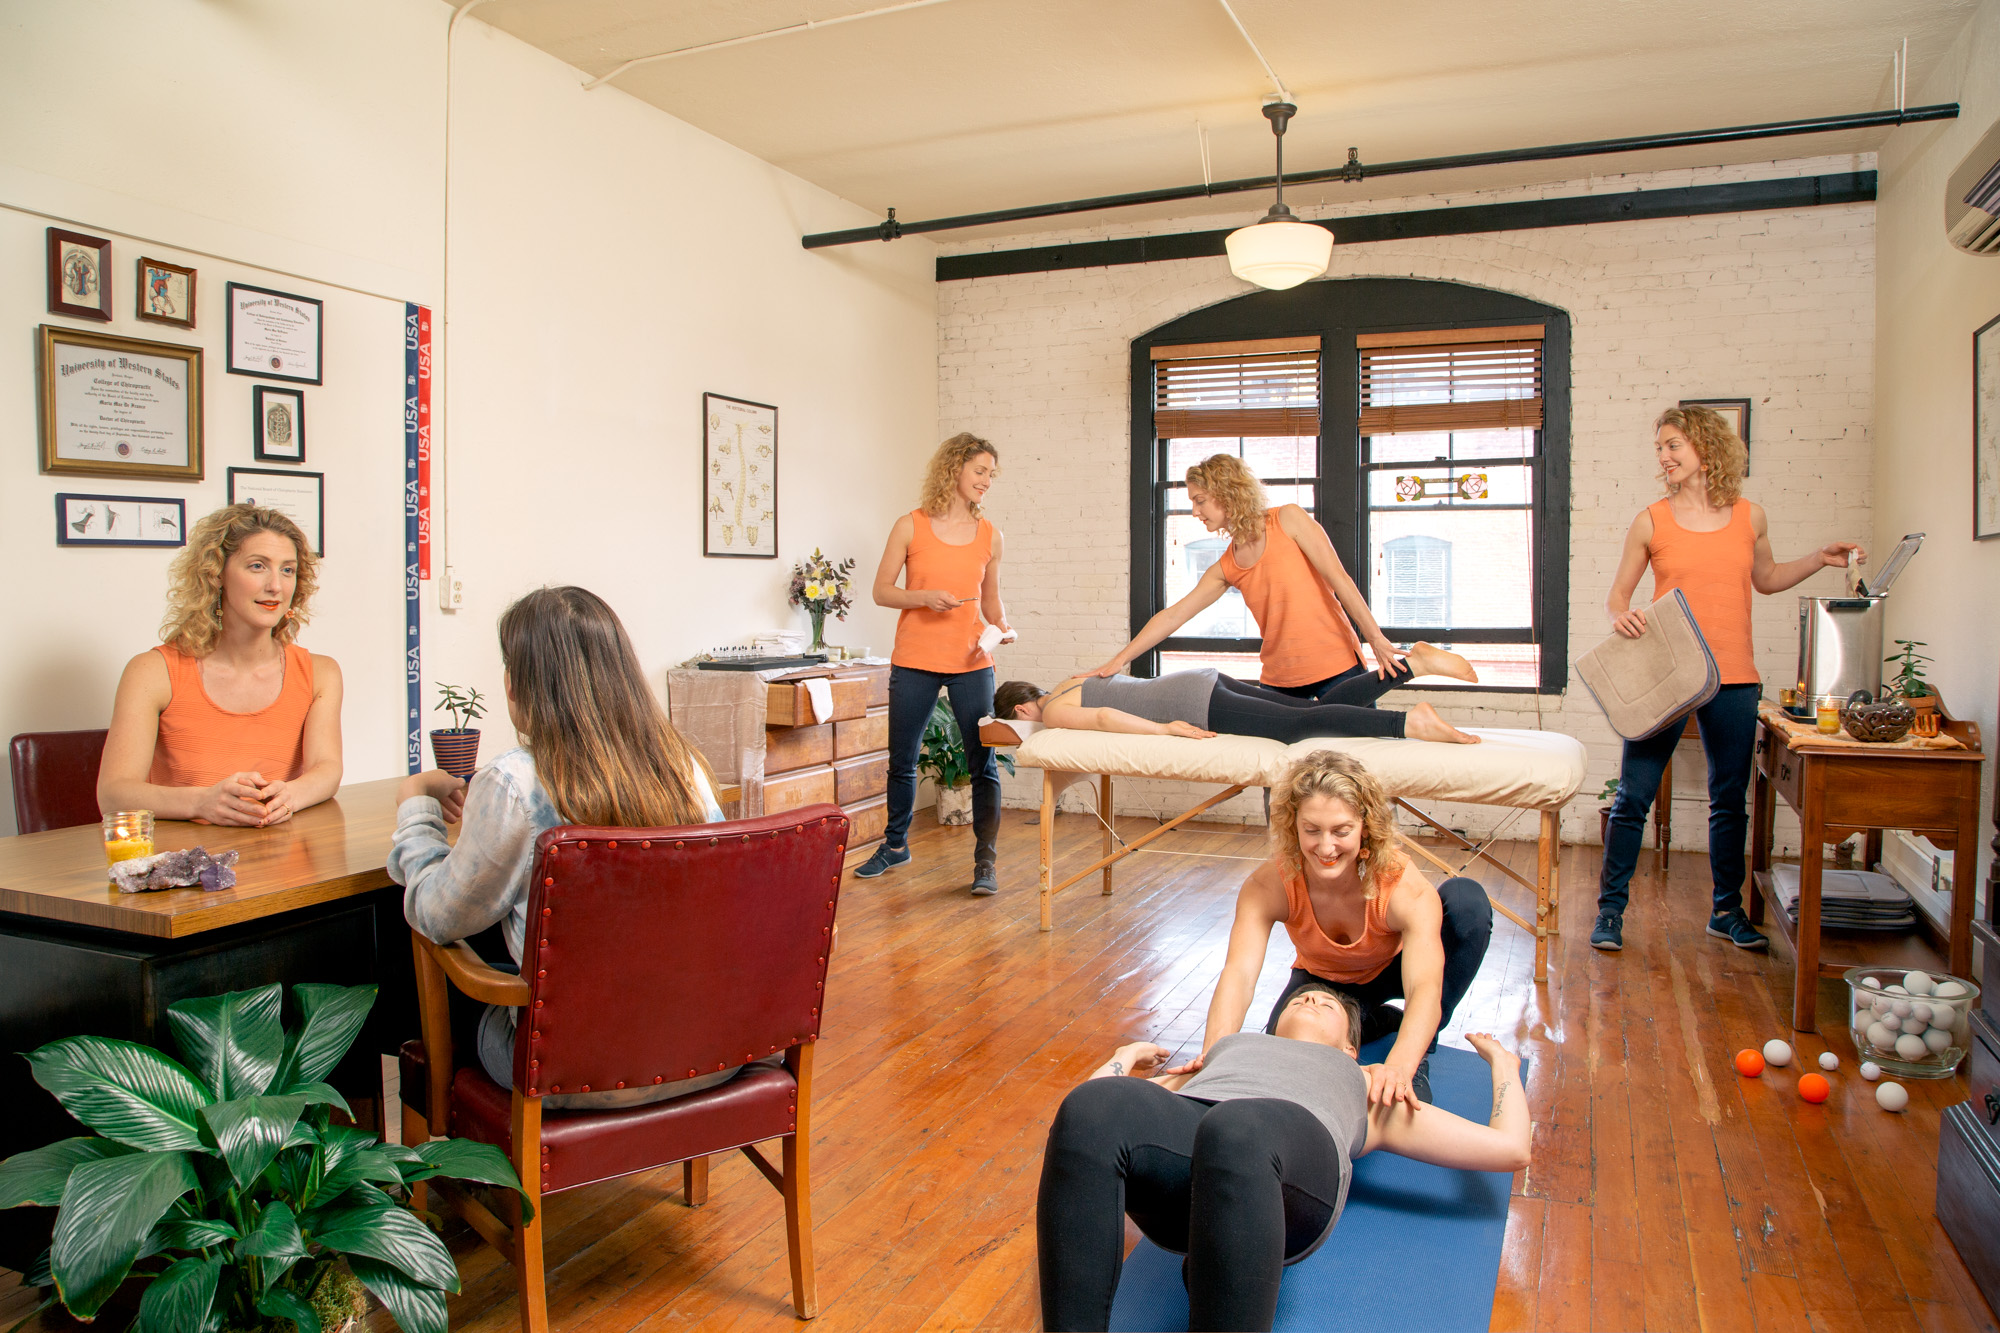 OM3 Body is a Holistic Chiropractic office that meets patients where they are and helps to take them (and their bodies) where they wish to go with their health and well-being.